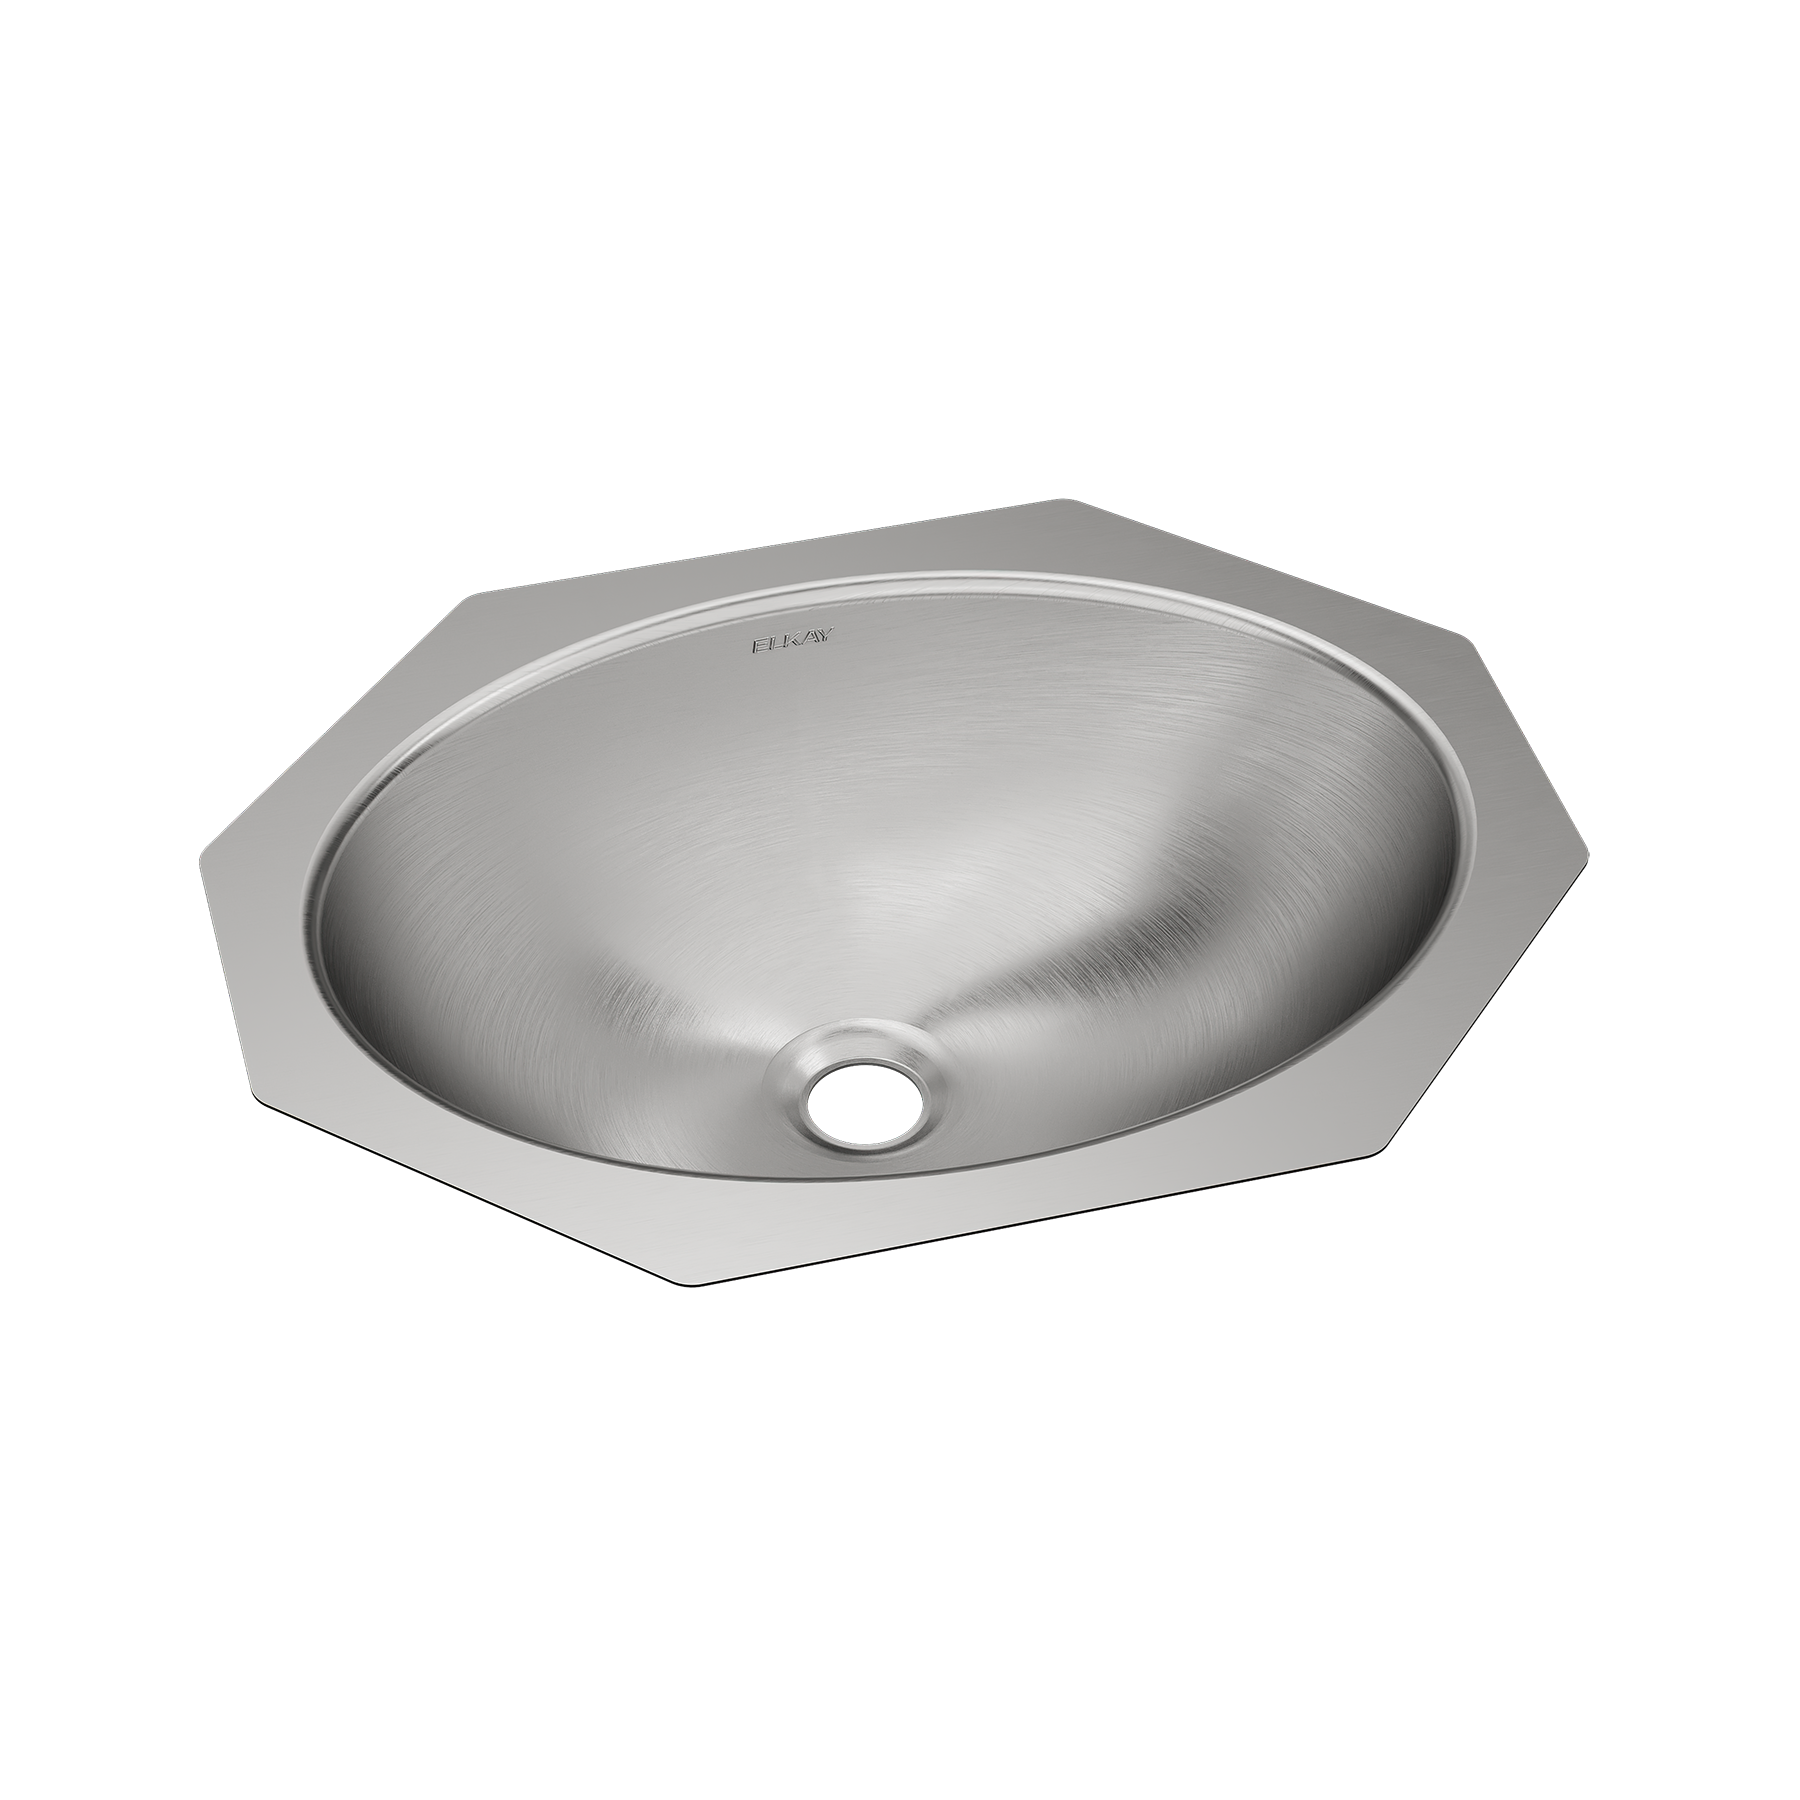 Elkay Asana Stainless Steel 18 X 14 X 6 Single Bowl Undermount Bathroom Sink